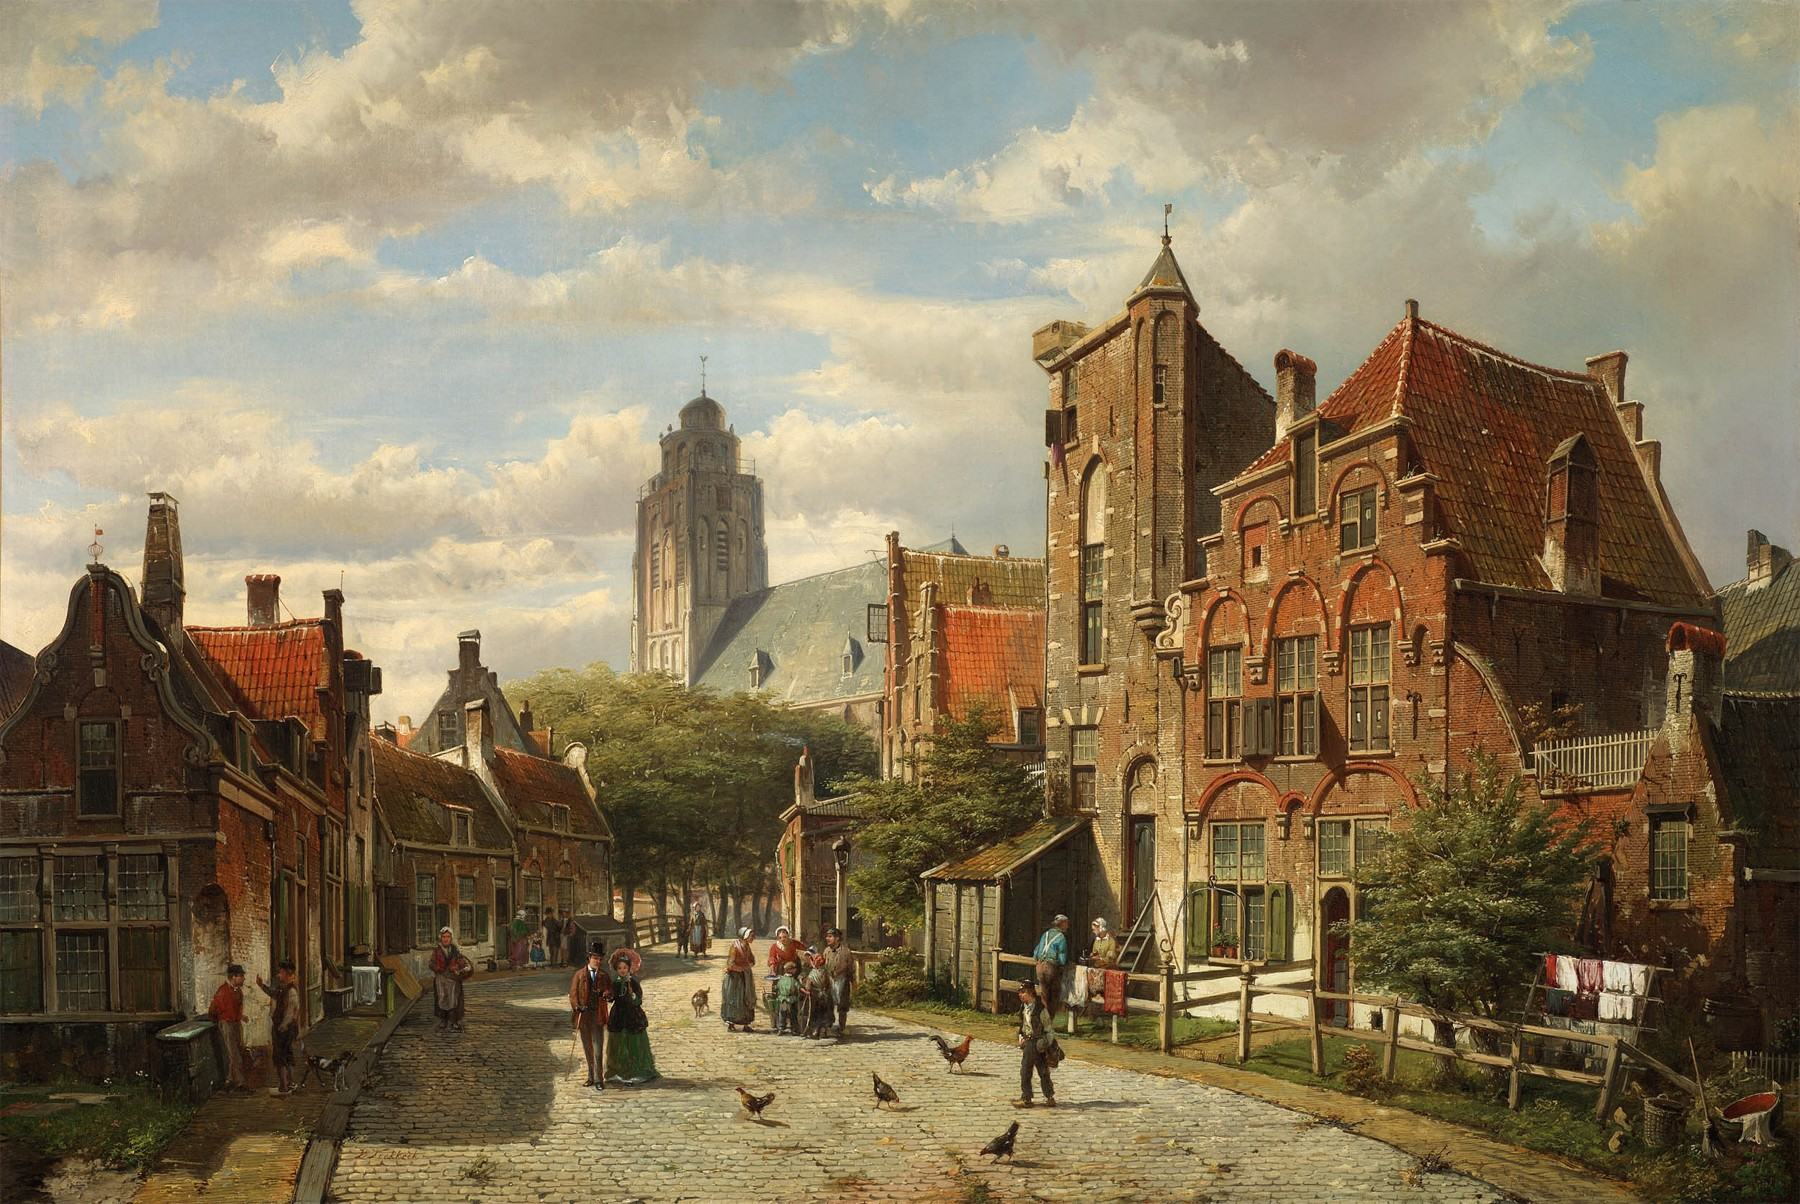 a-dutch-street-by-willem-koekkoek.jpg